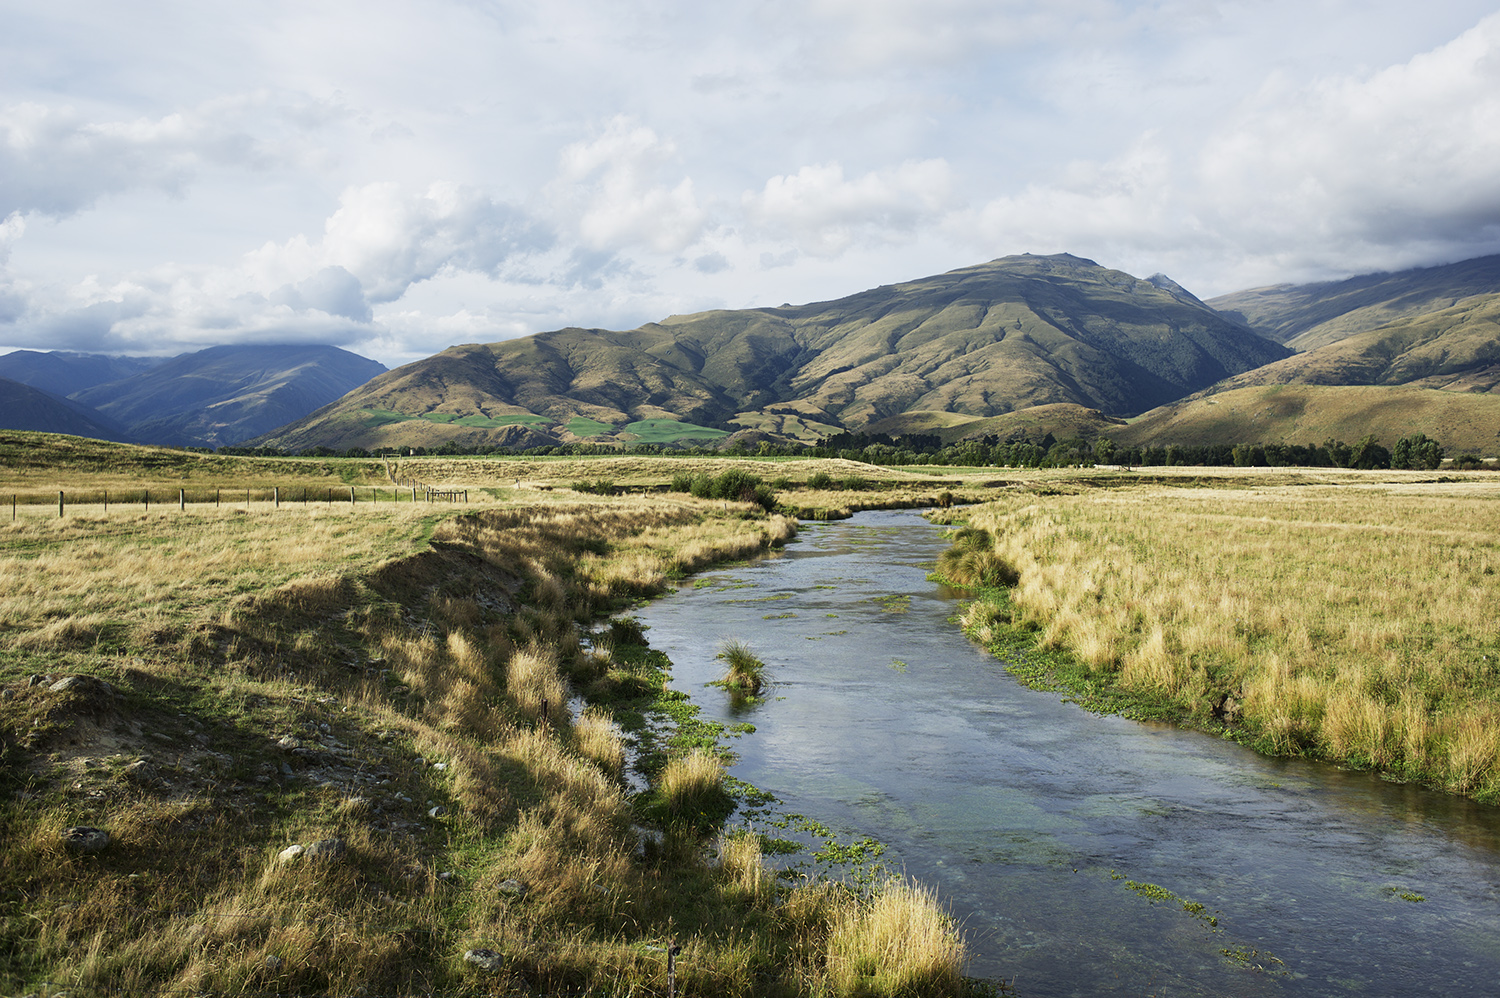 nz spring creek.jpg